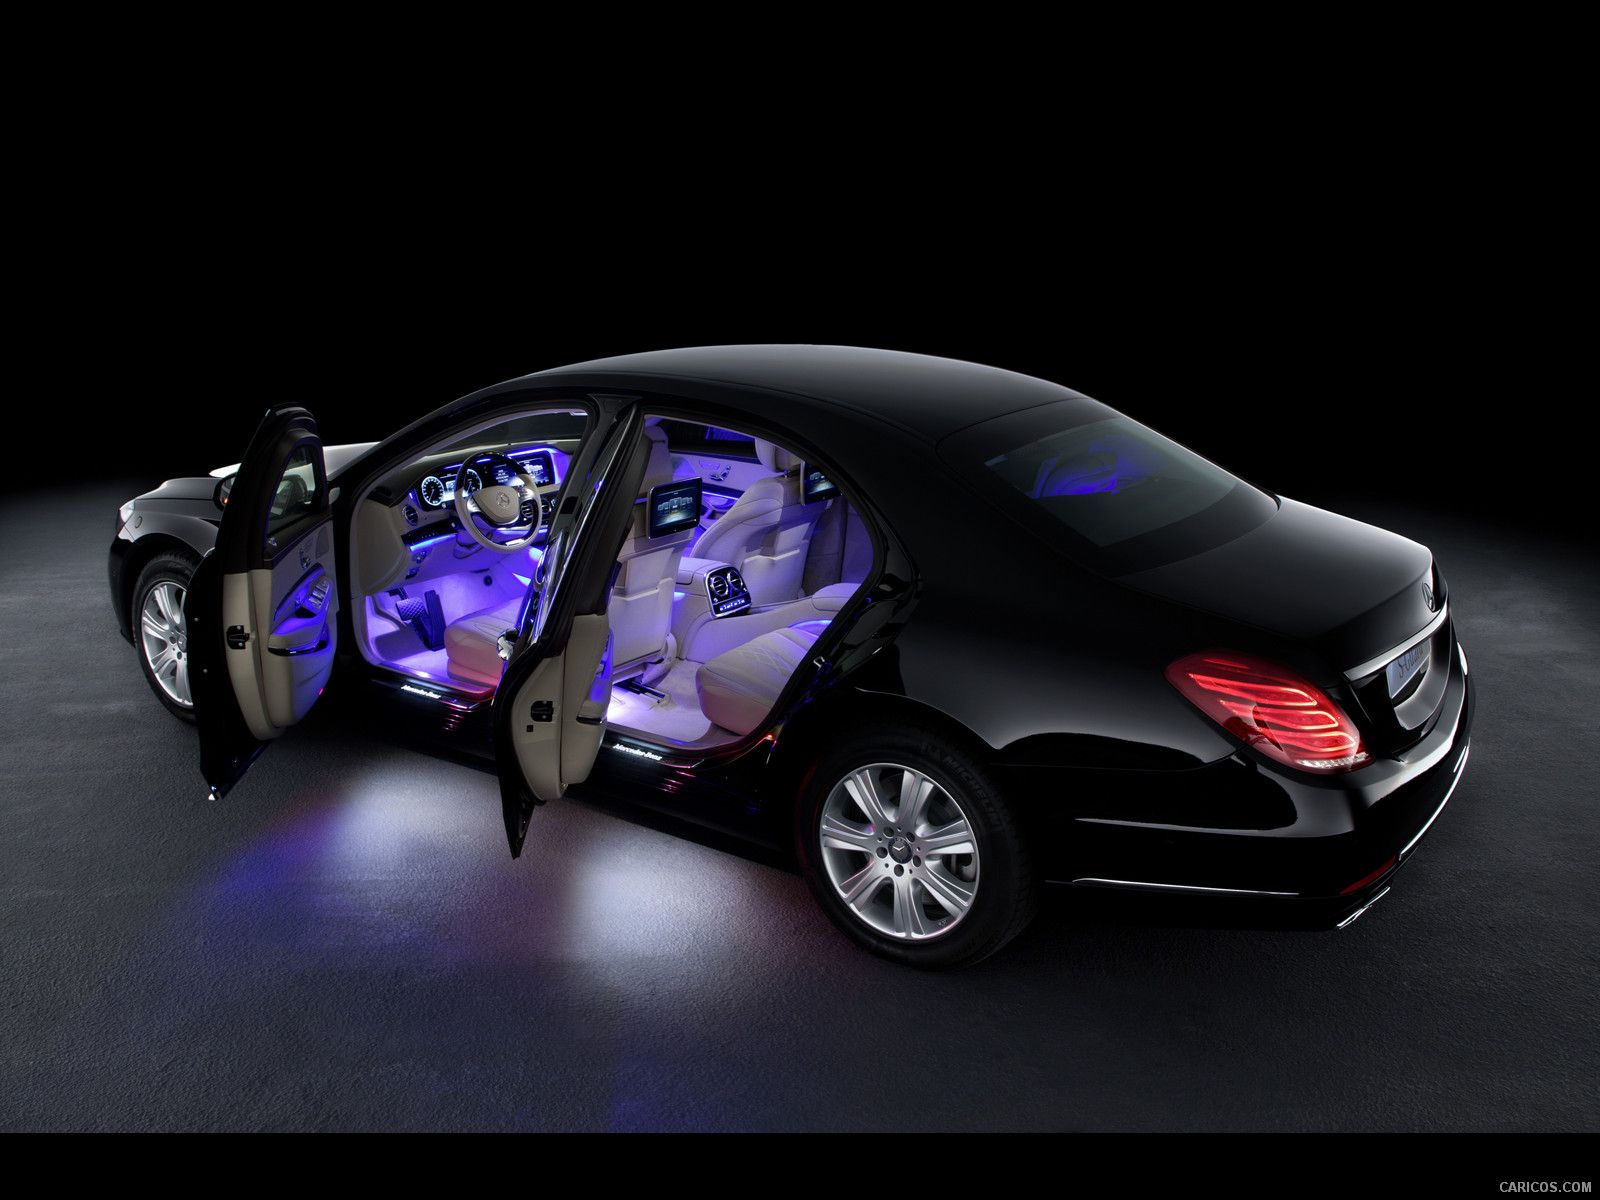 Take a look at the luxurious Mercedes Benz S Class